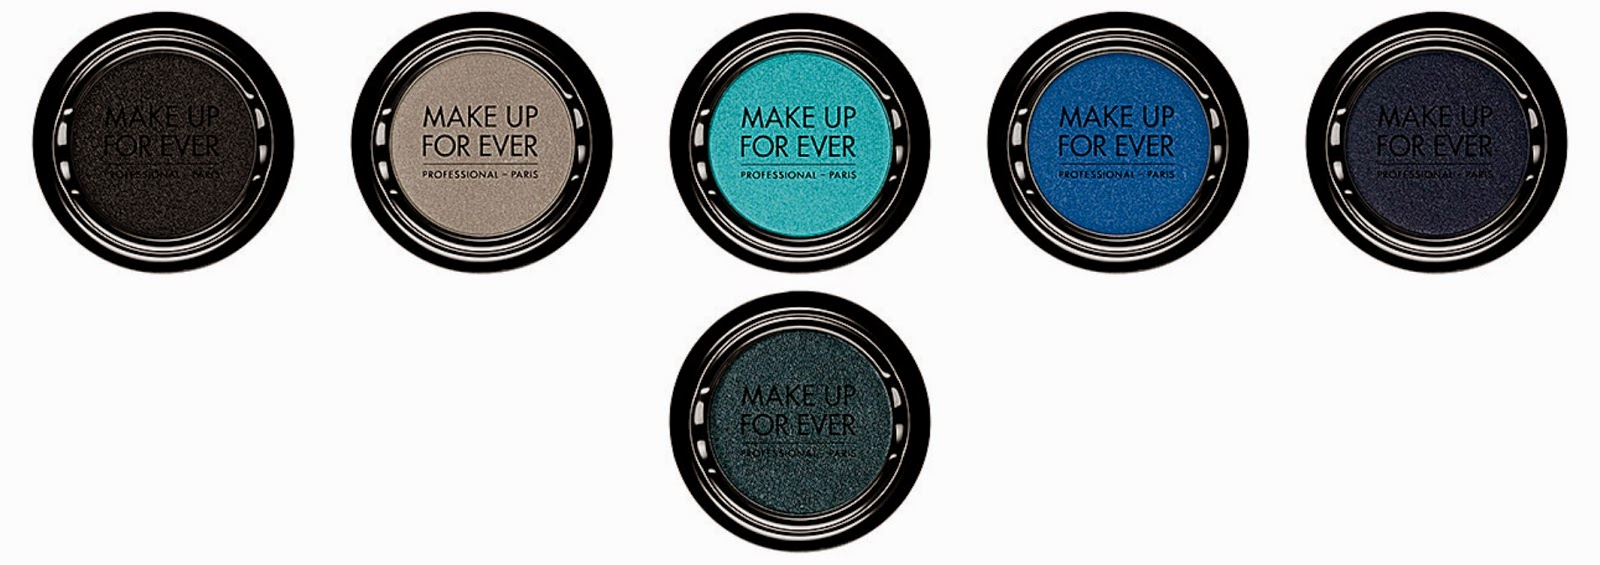 Make Up For Ever Artist Shadow  Top from left: S102 Onyx; S114 Pearl Gray; S208 Baby Blue; S214 Ultramarine Blue; S-226 Abyssal Blue Bottom from left: S228 Petrol Blue